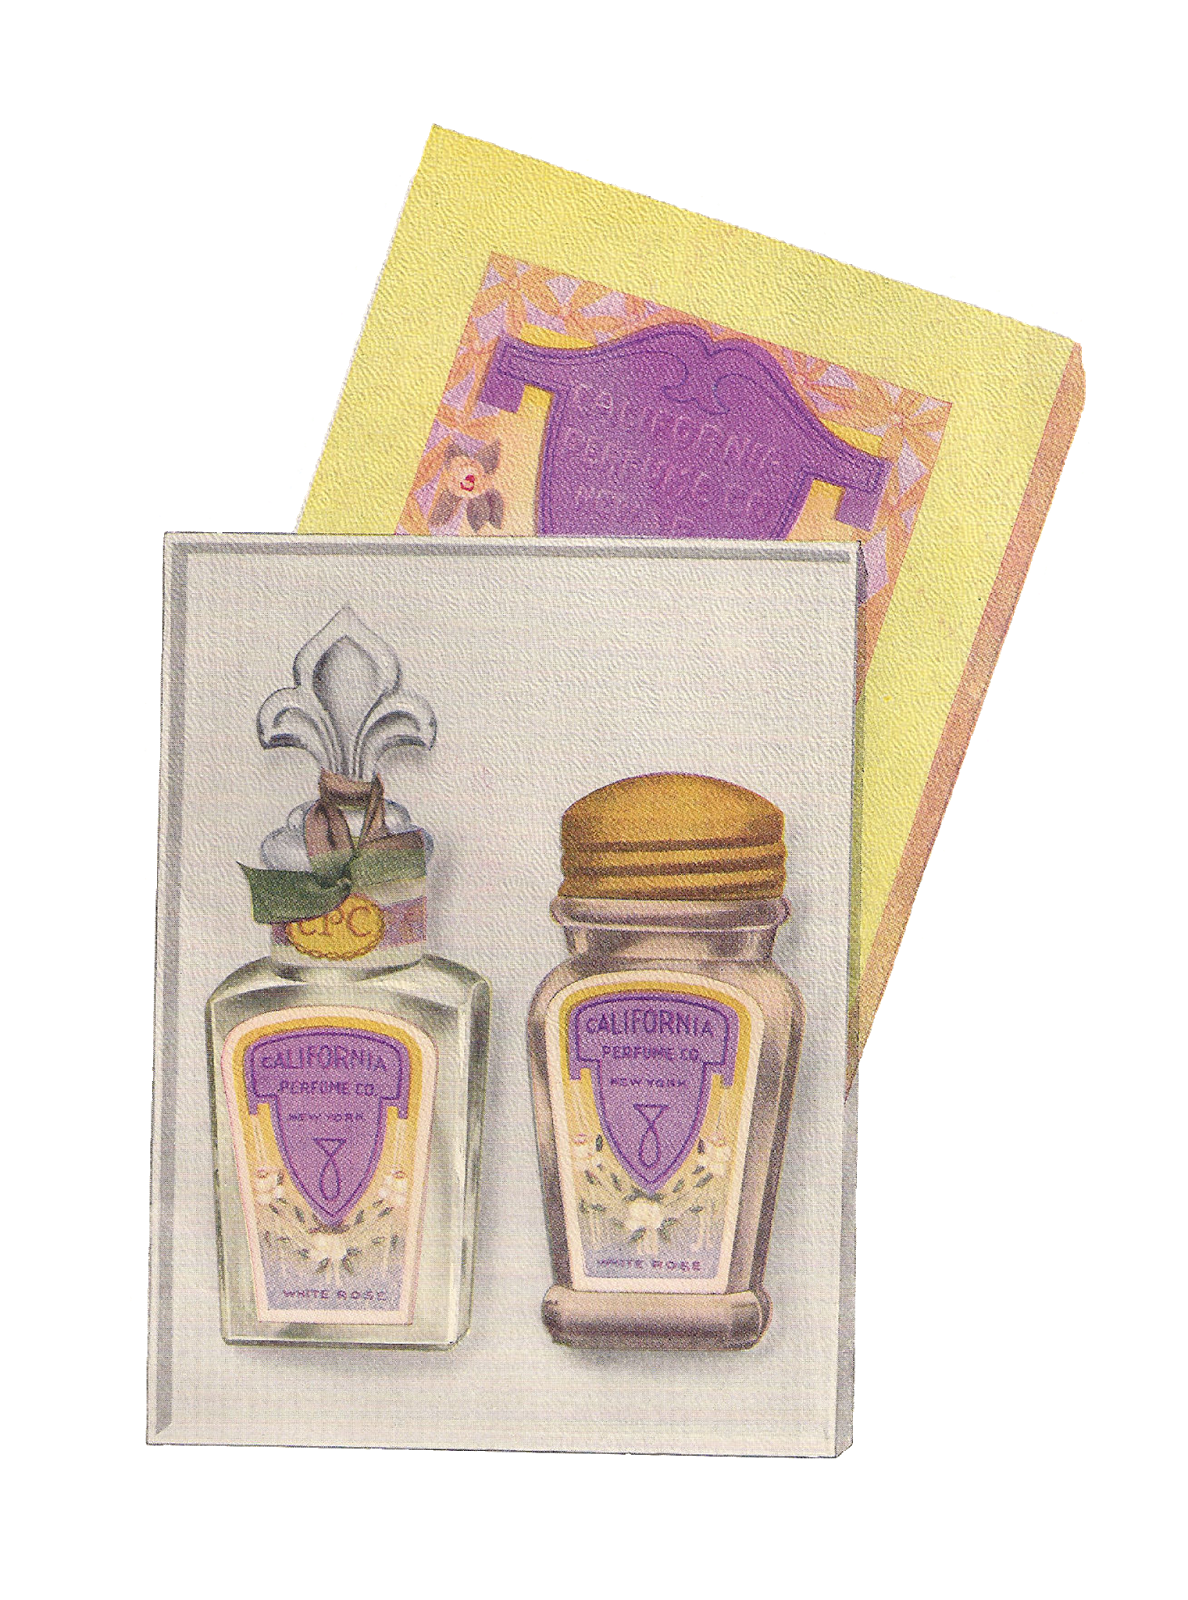 Perfume clipart cosmetic bottle. Avon products box beauty